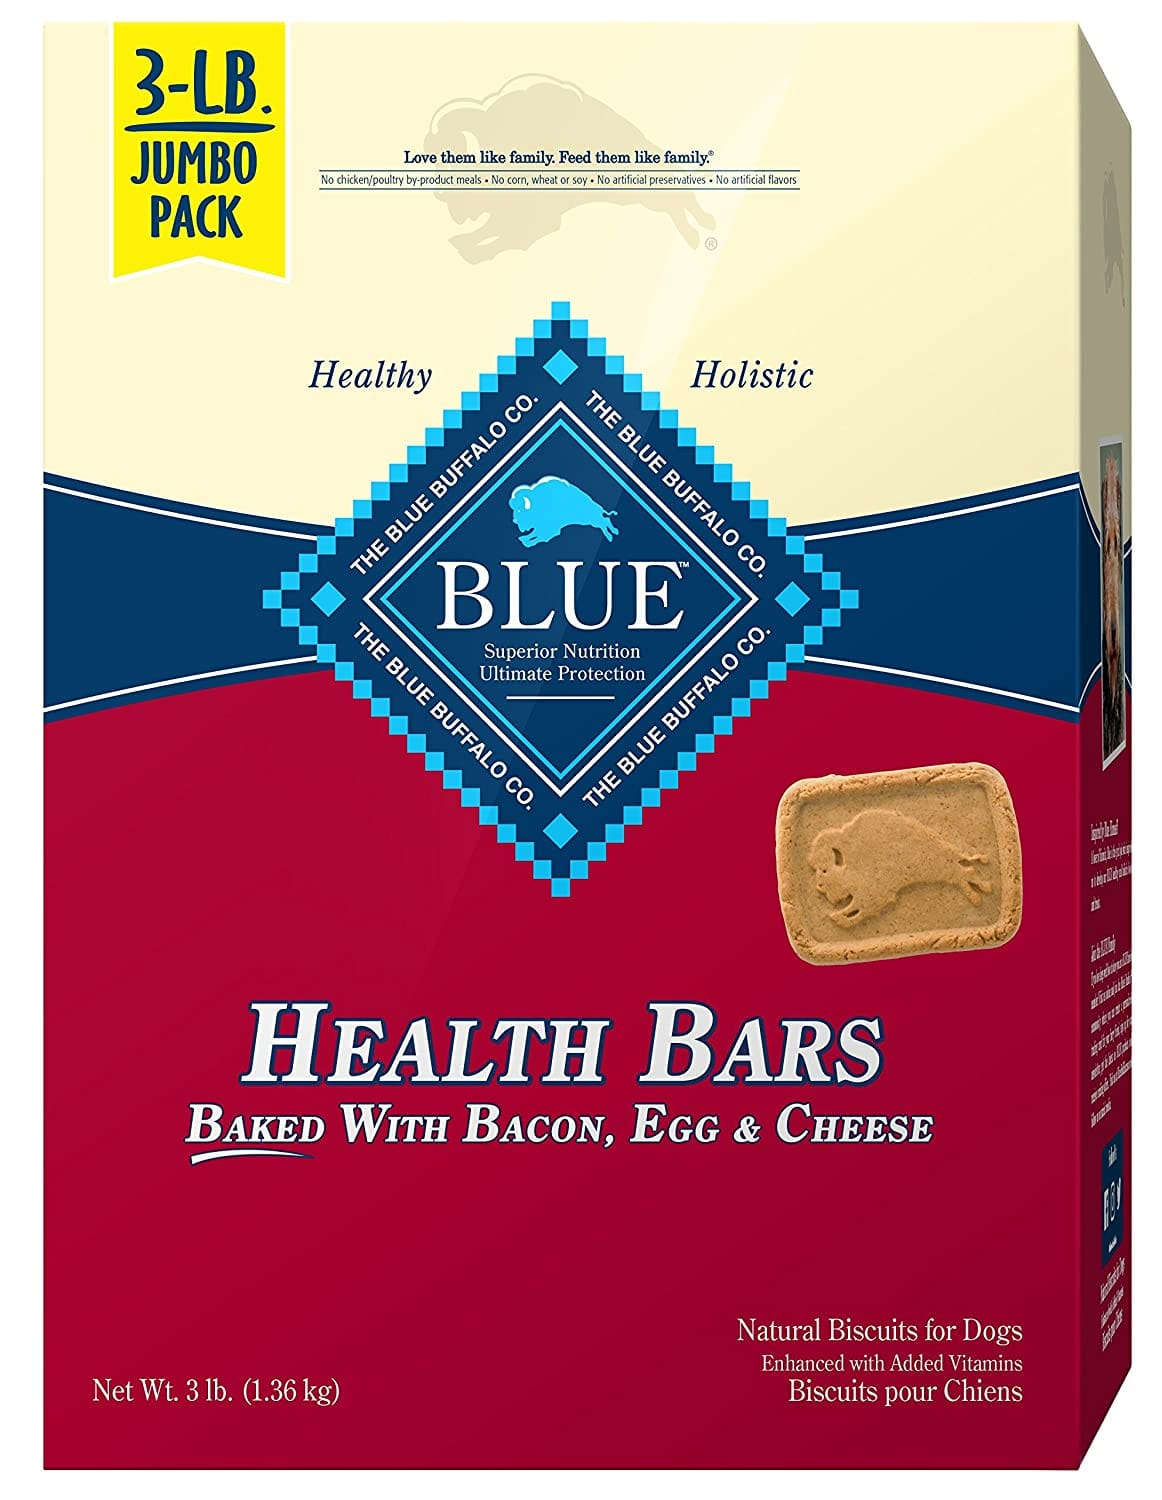 Blue Buffalo Health Bars Natural Crunchy Dog Treats Biscuits 3lb (Bacon Egg & Cheese) $4.25 with s/s